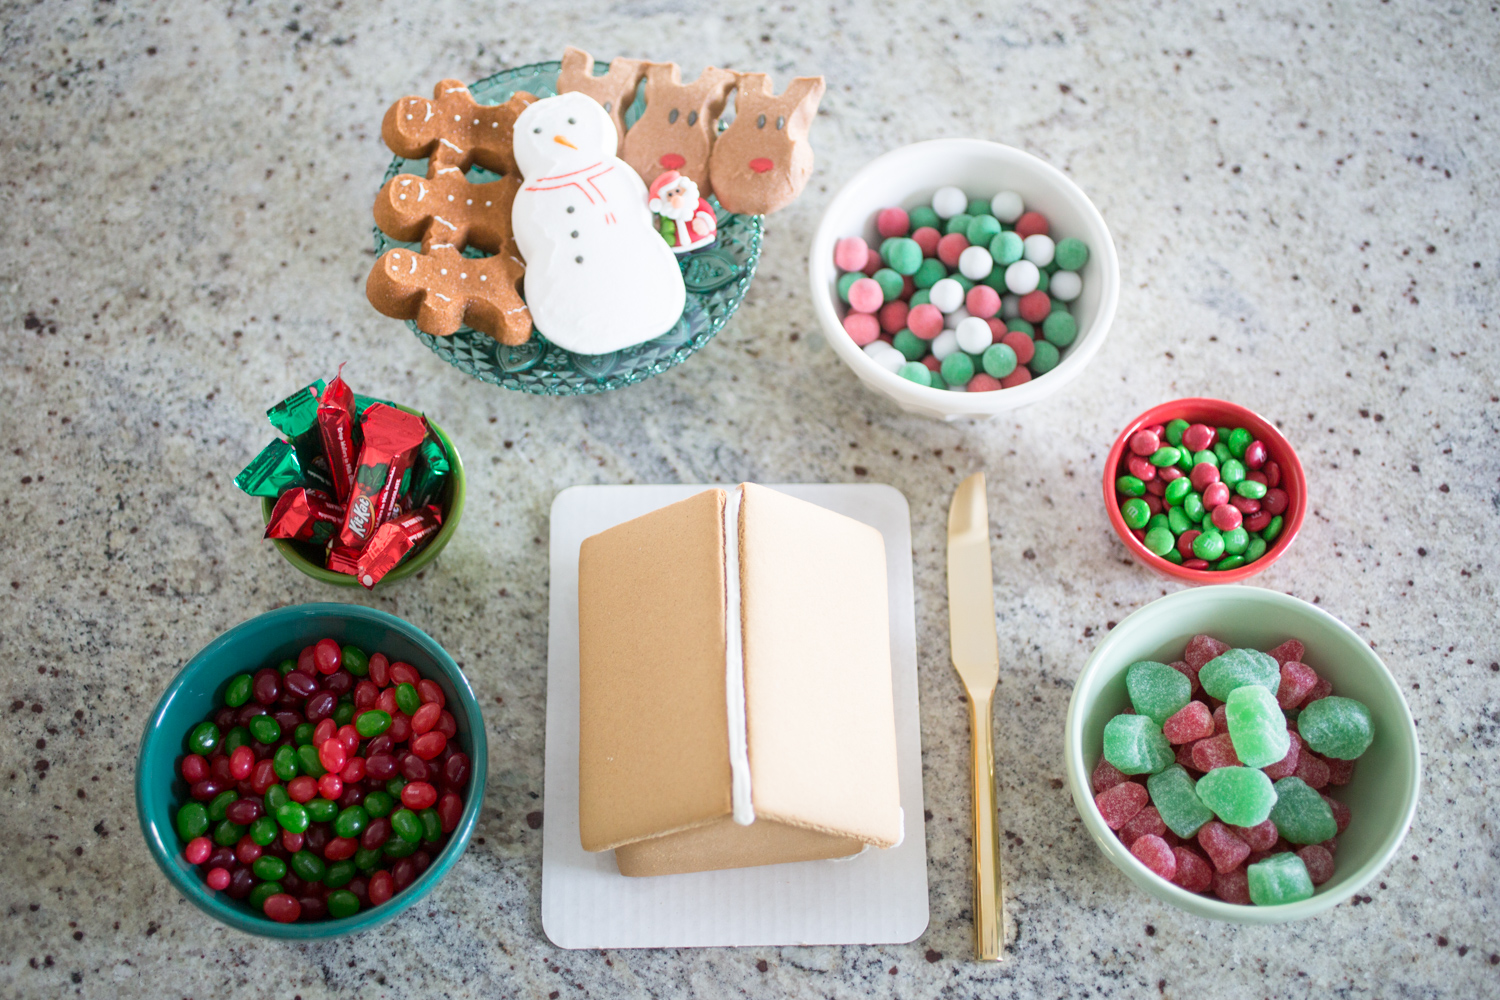 His and Her style blog- Building a gingerbread house